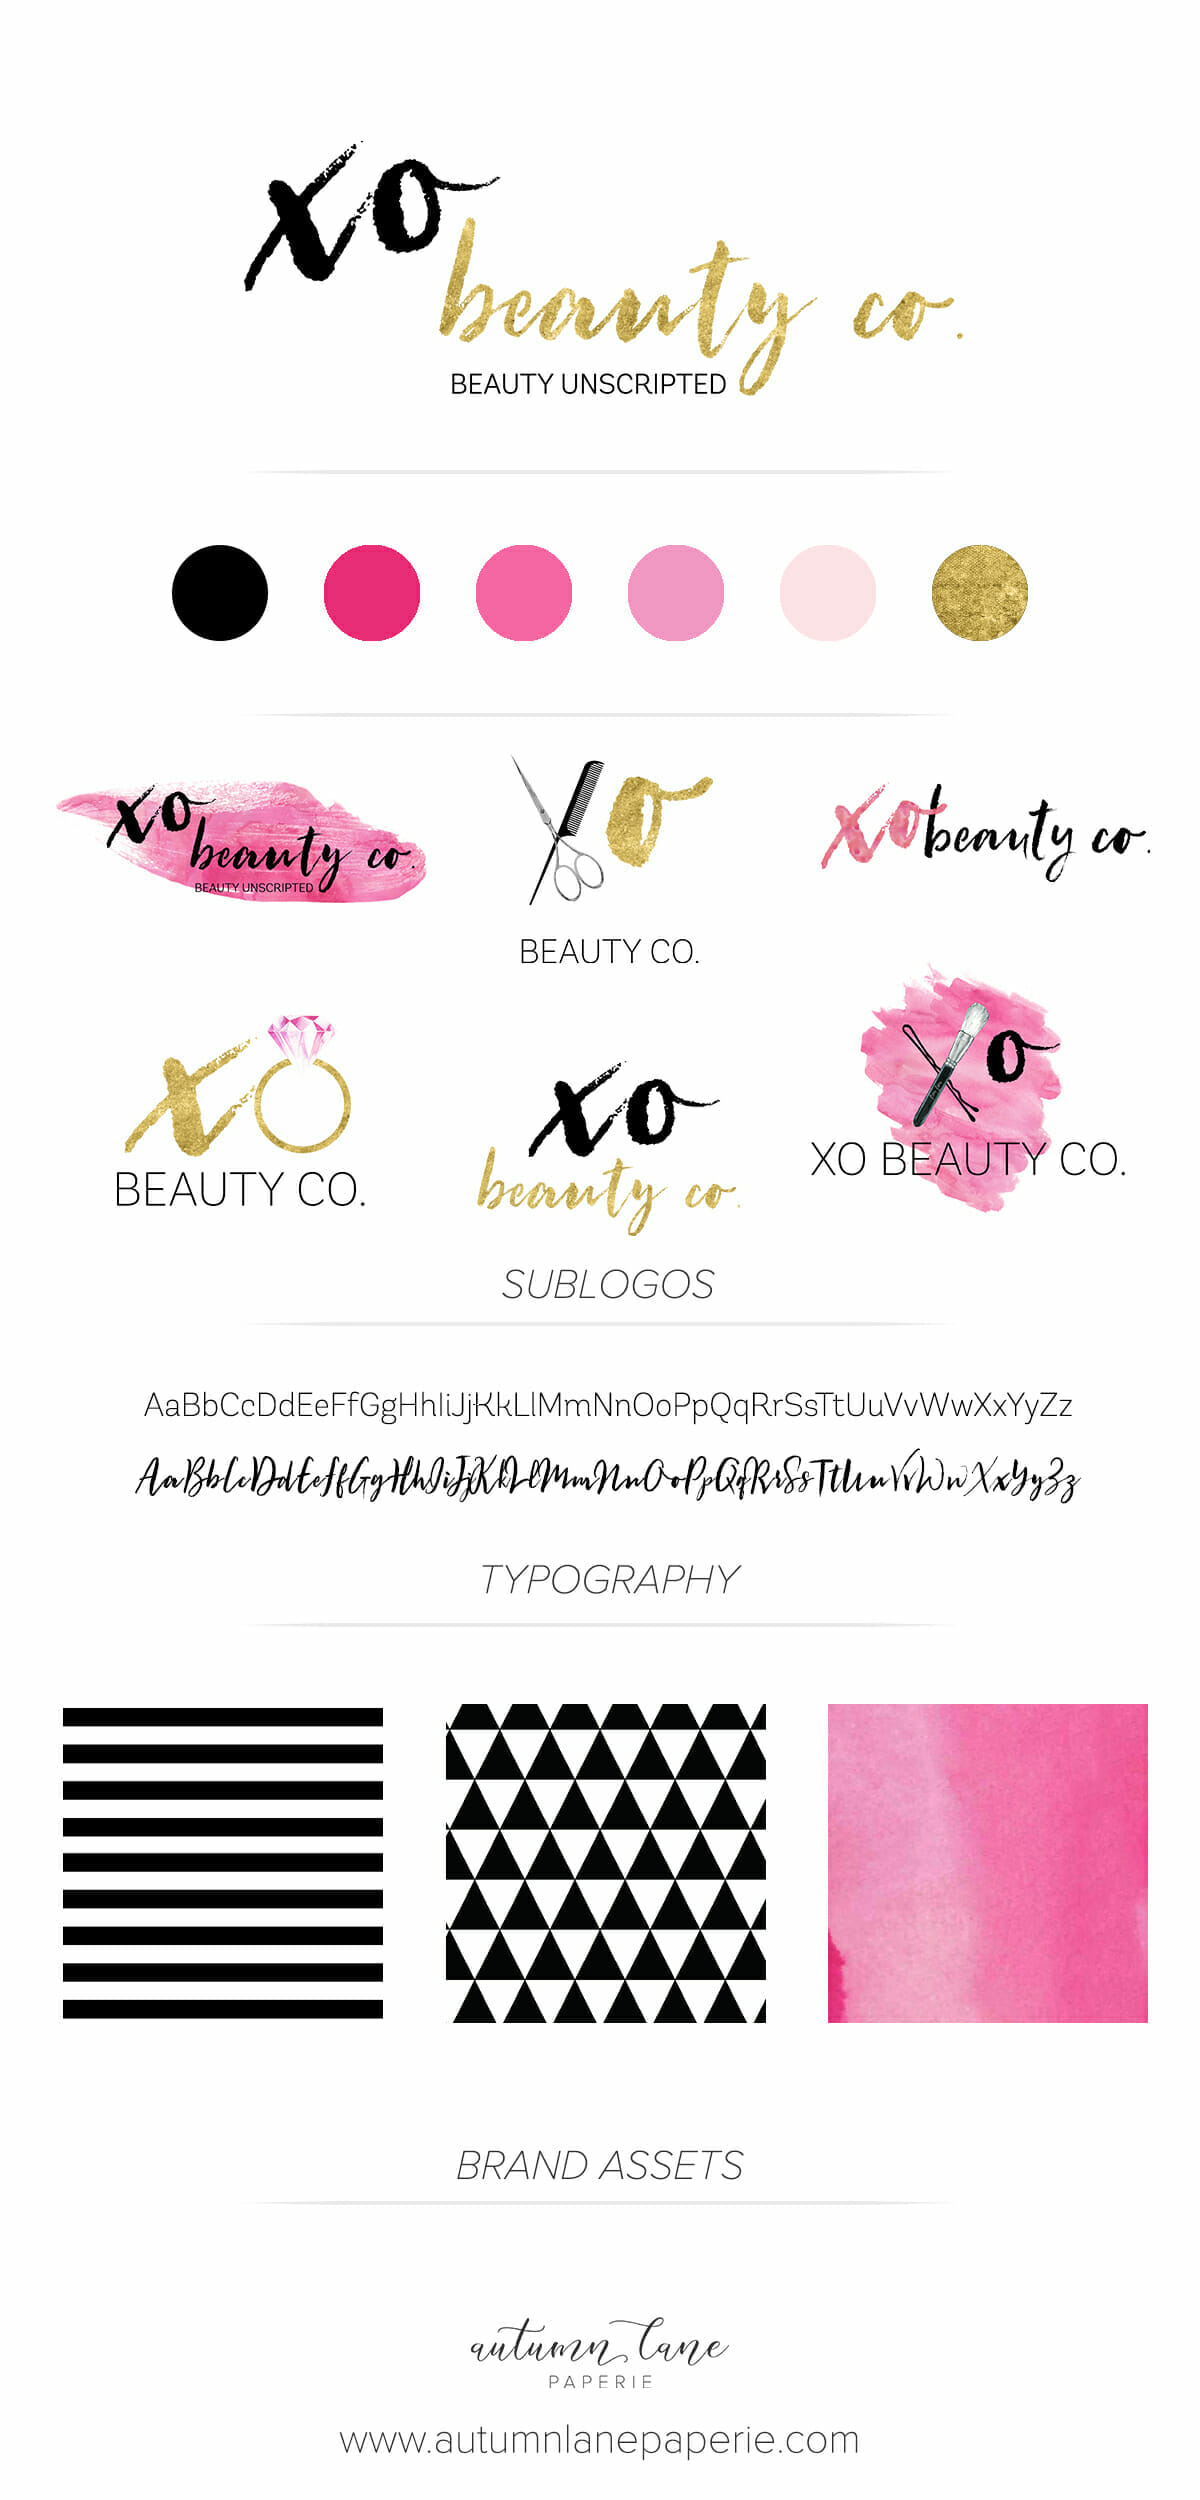 XO Beauty Brand Board